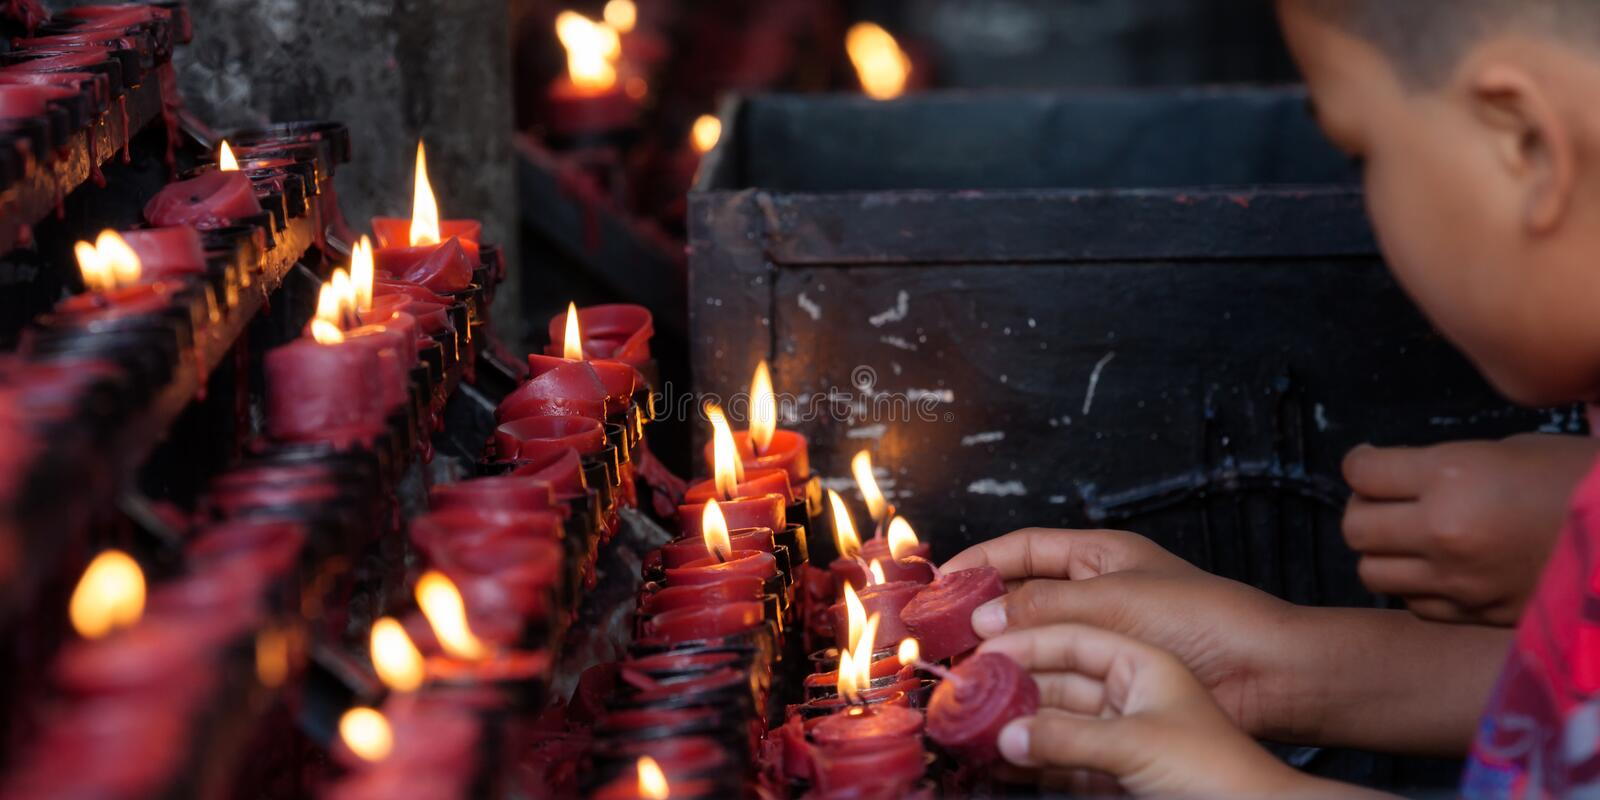 Candles. Children light candles in a church stock image